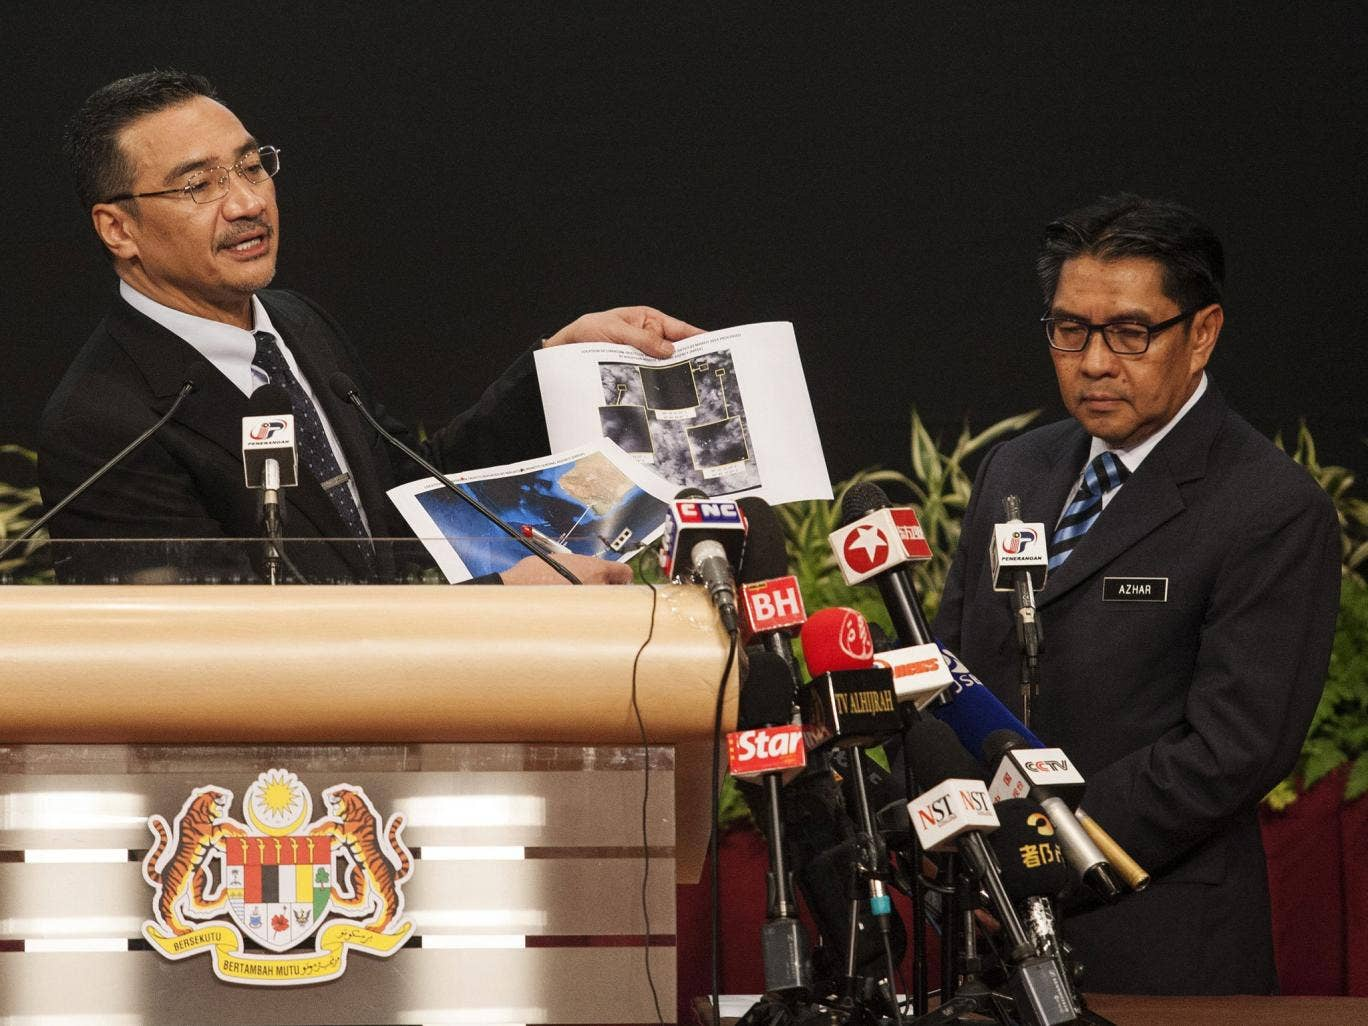 Malaysian Defense Minister and acting Transport Minister Hishammuddin Hussein (L) and Malaysia's Department Civil Aviation Director General, Azharuddin Abdul Rahman (R) show pictures of possible debris during a media conference in Kuala Lumpur